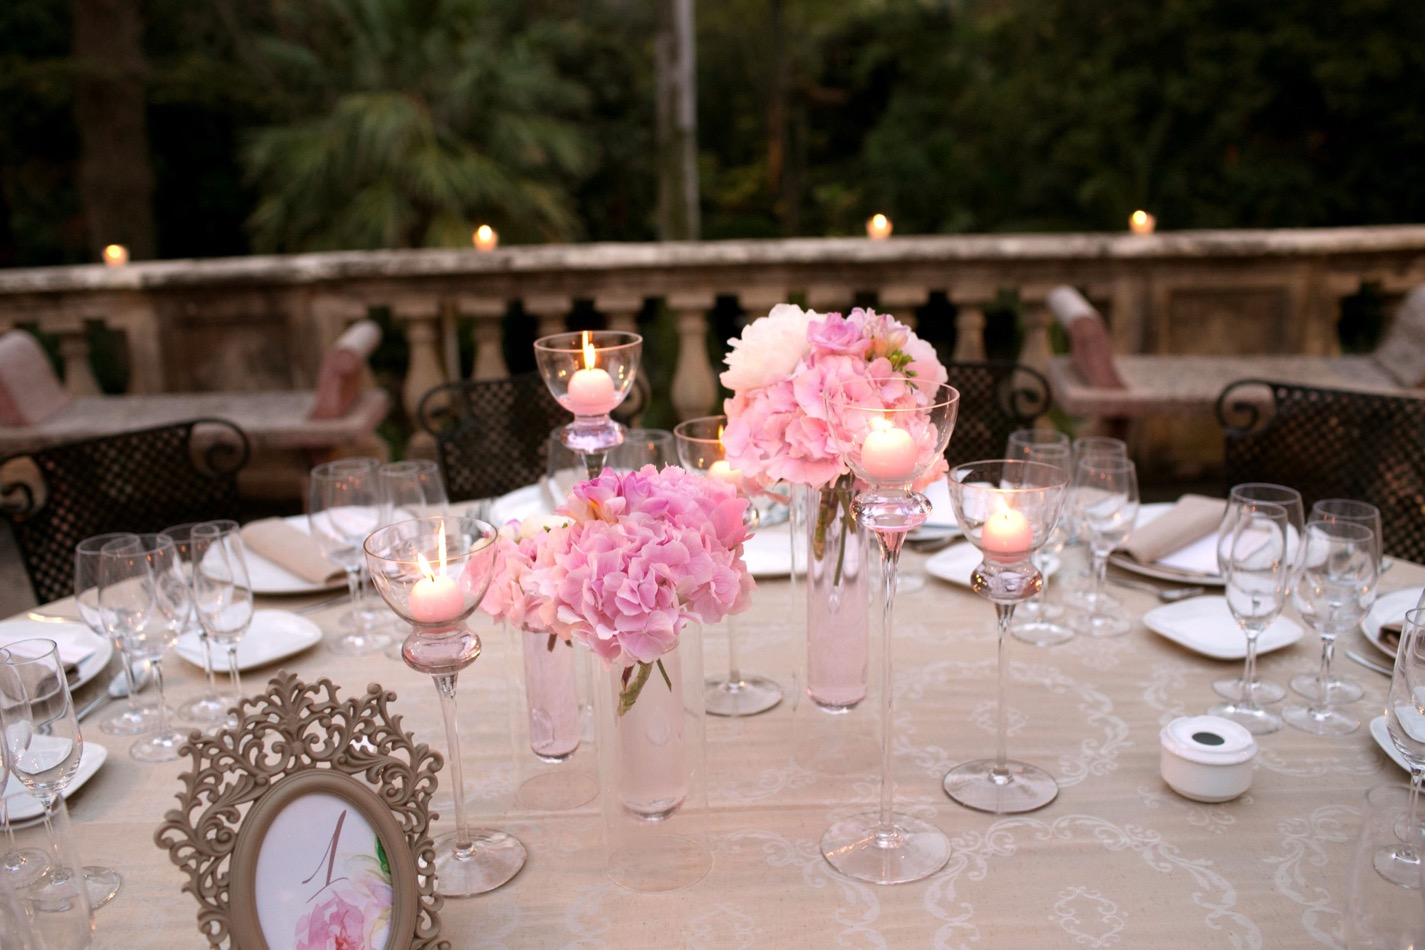 Si-Quiero-Wedding-Planner-By-Sira-Antequera-Vanesa-Jose-35